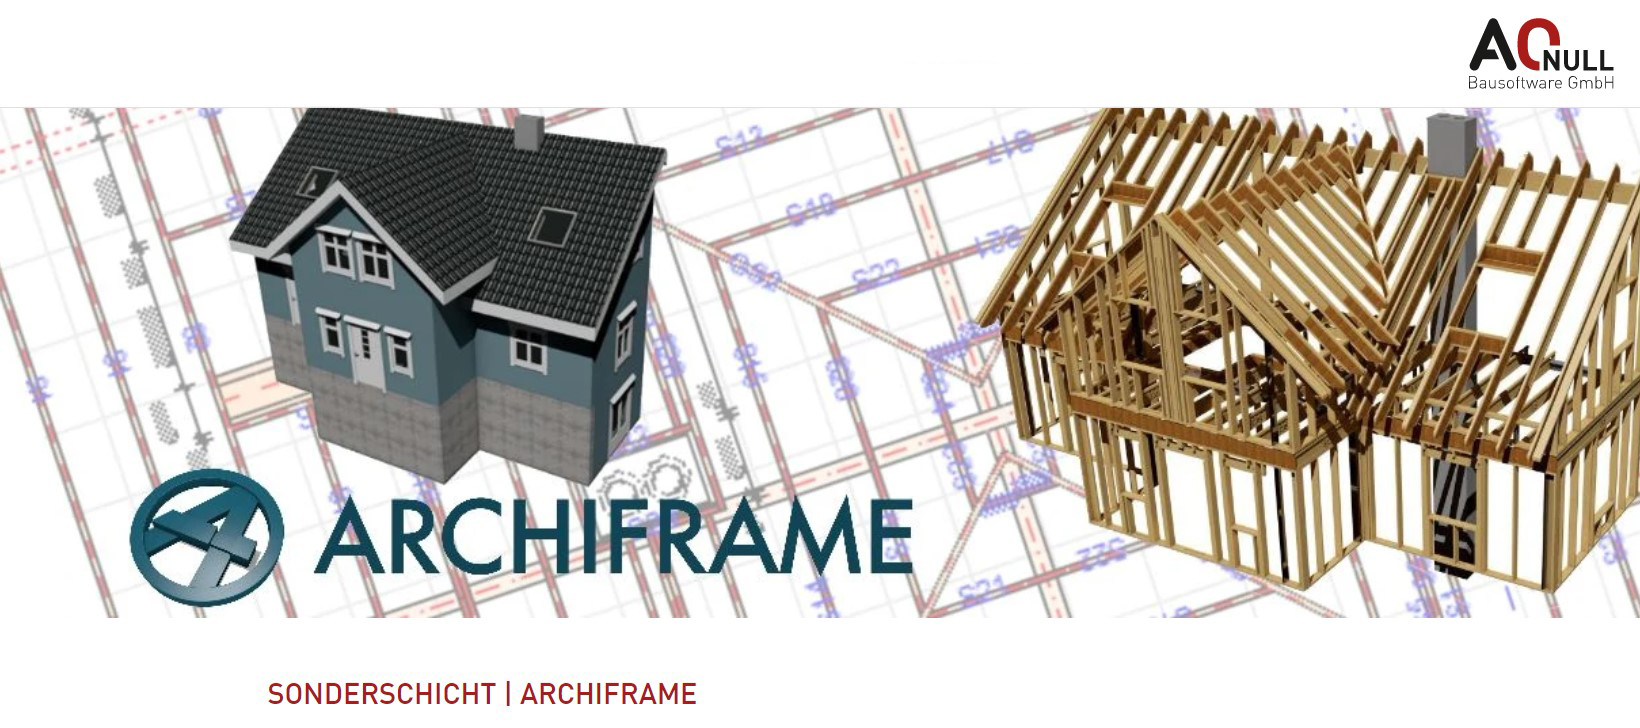 archiframe_anull